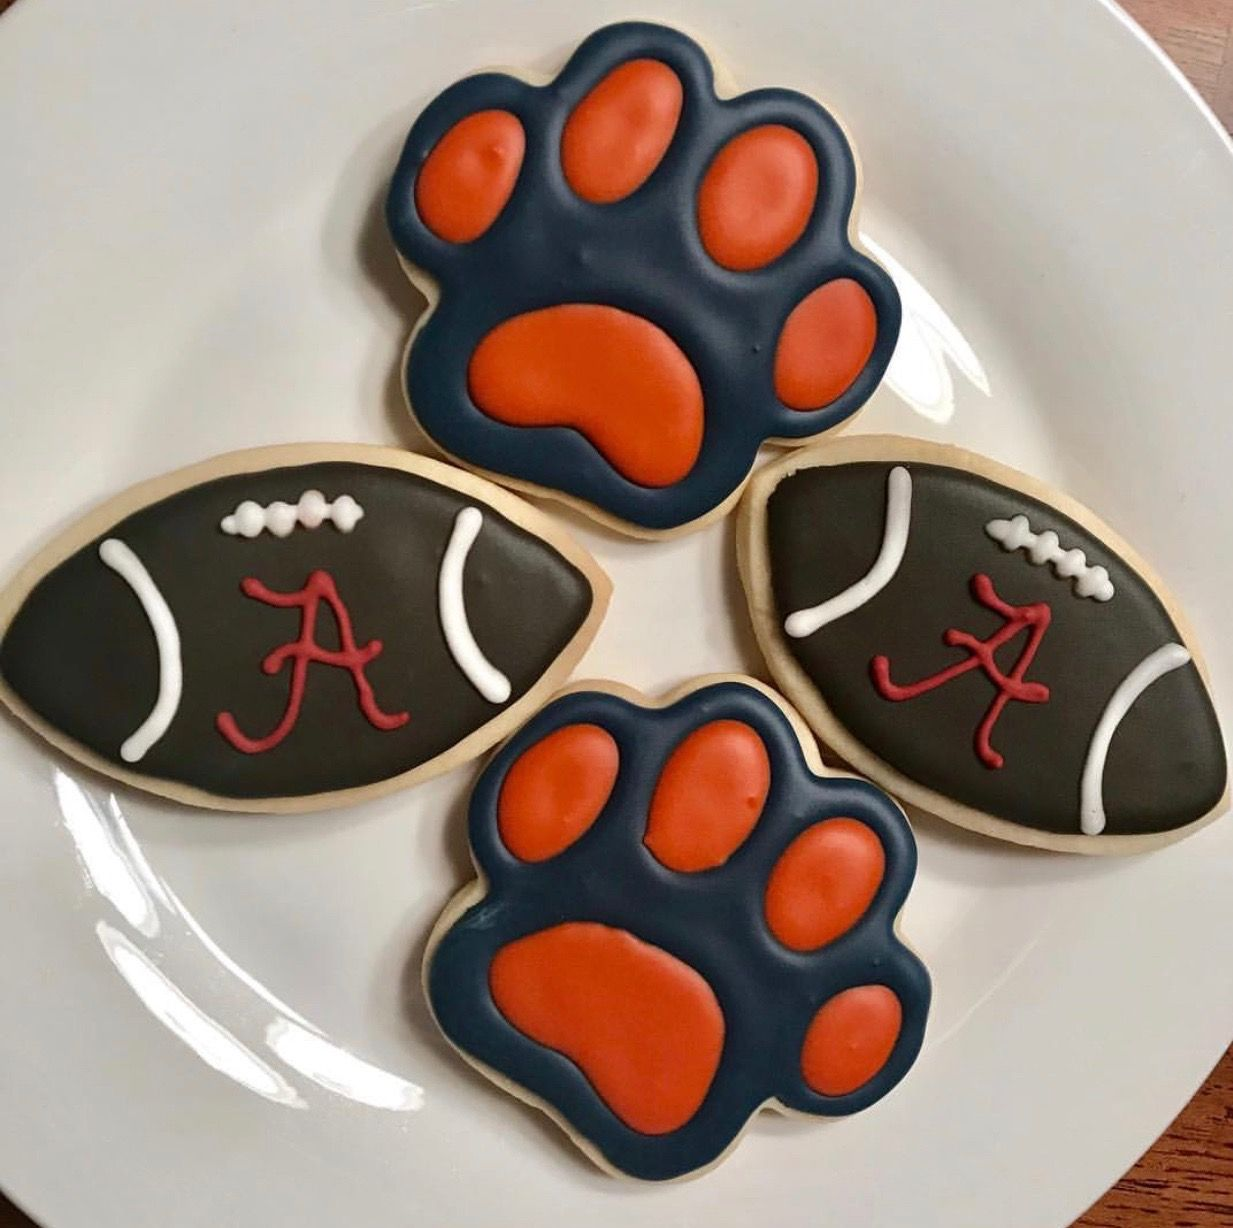 Pin on cookies by me